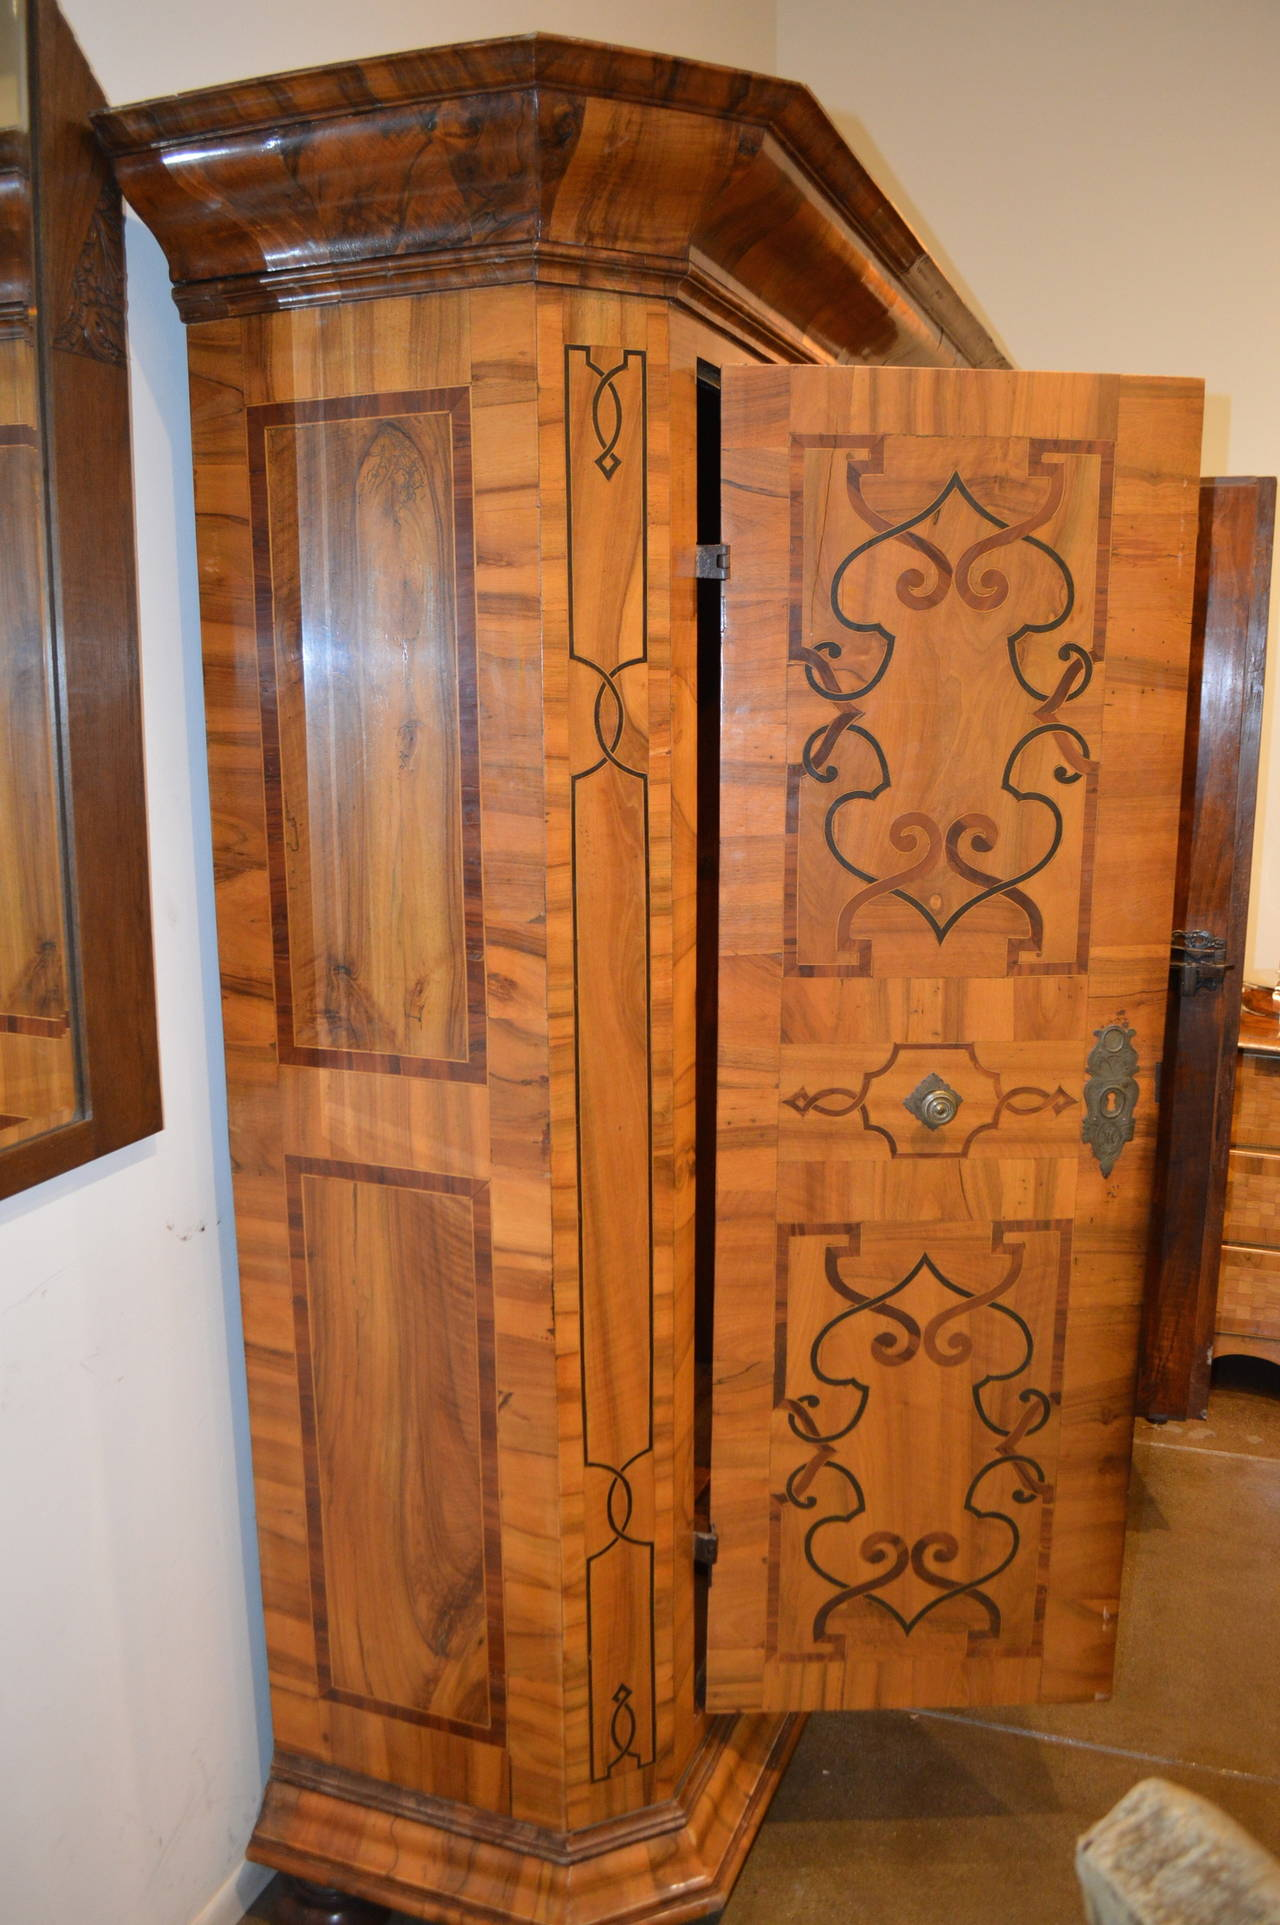 Magnificent antique Austrian armoire with multiple walnut inlays.